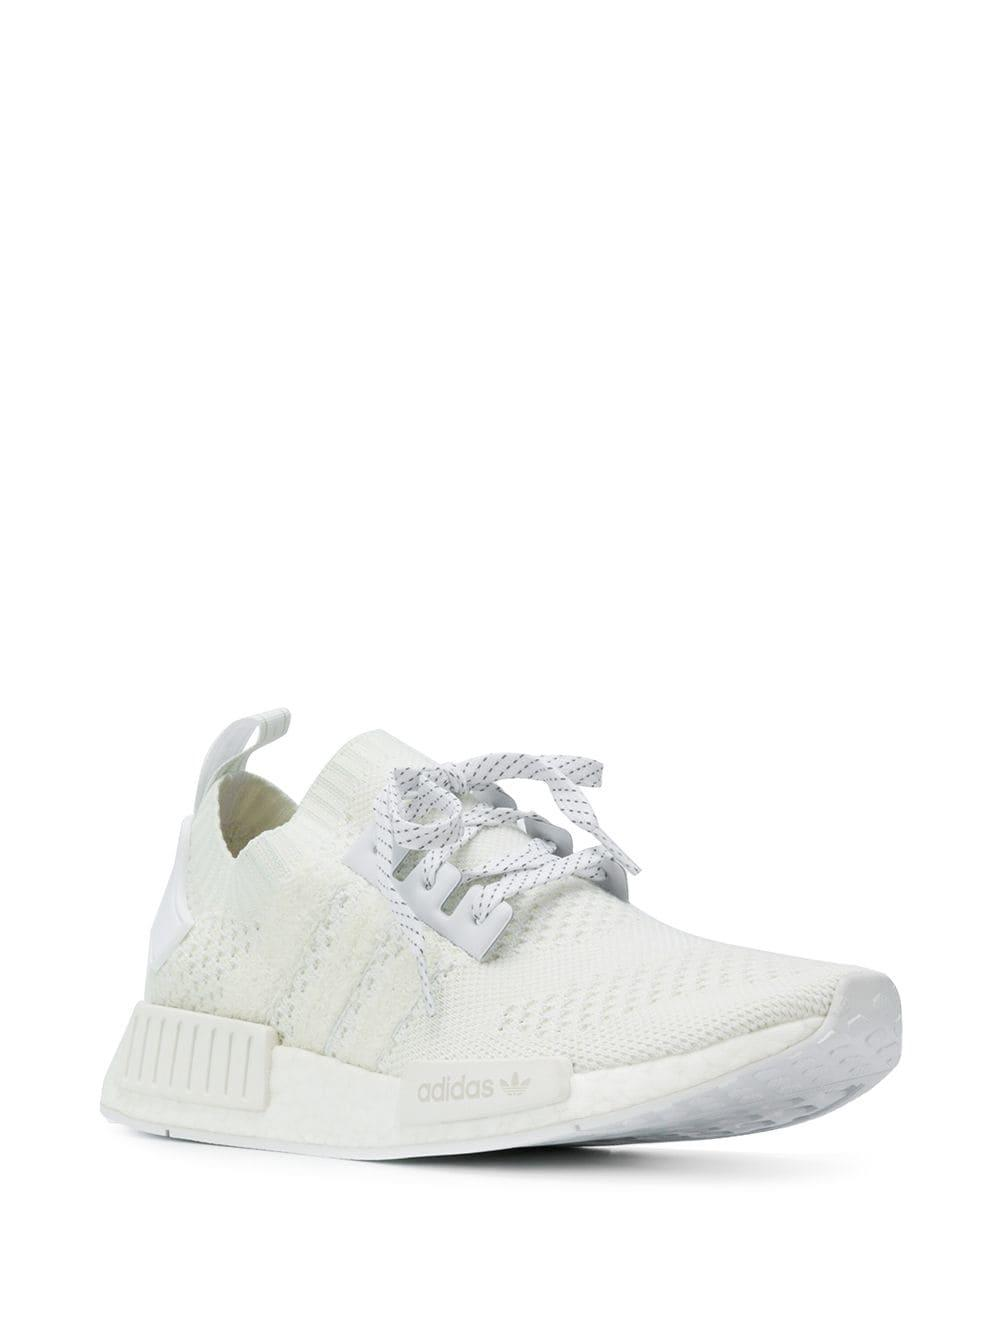 1ab48424dc4c5 adidas Nmd R1 Sneakers in White for Men - Lyst